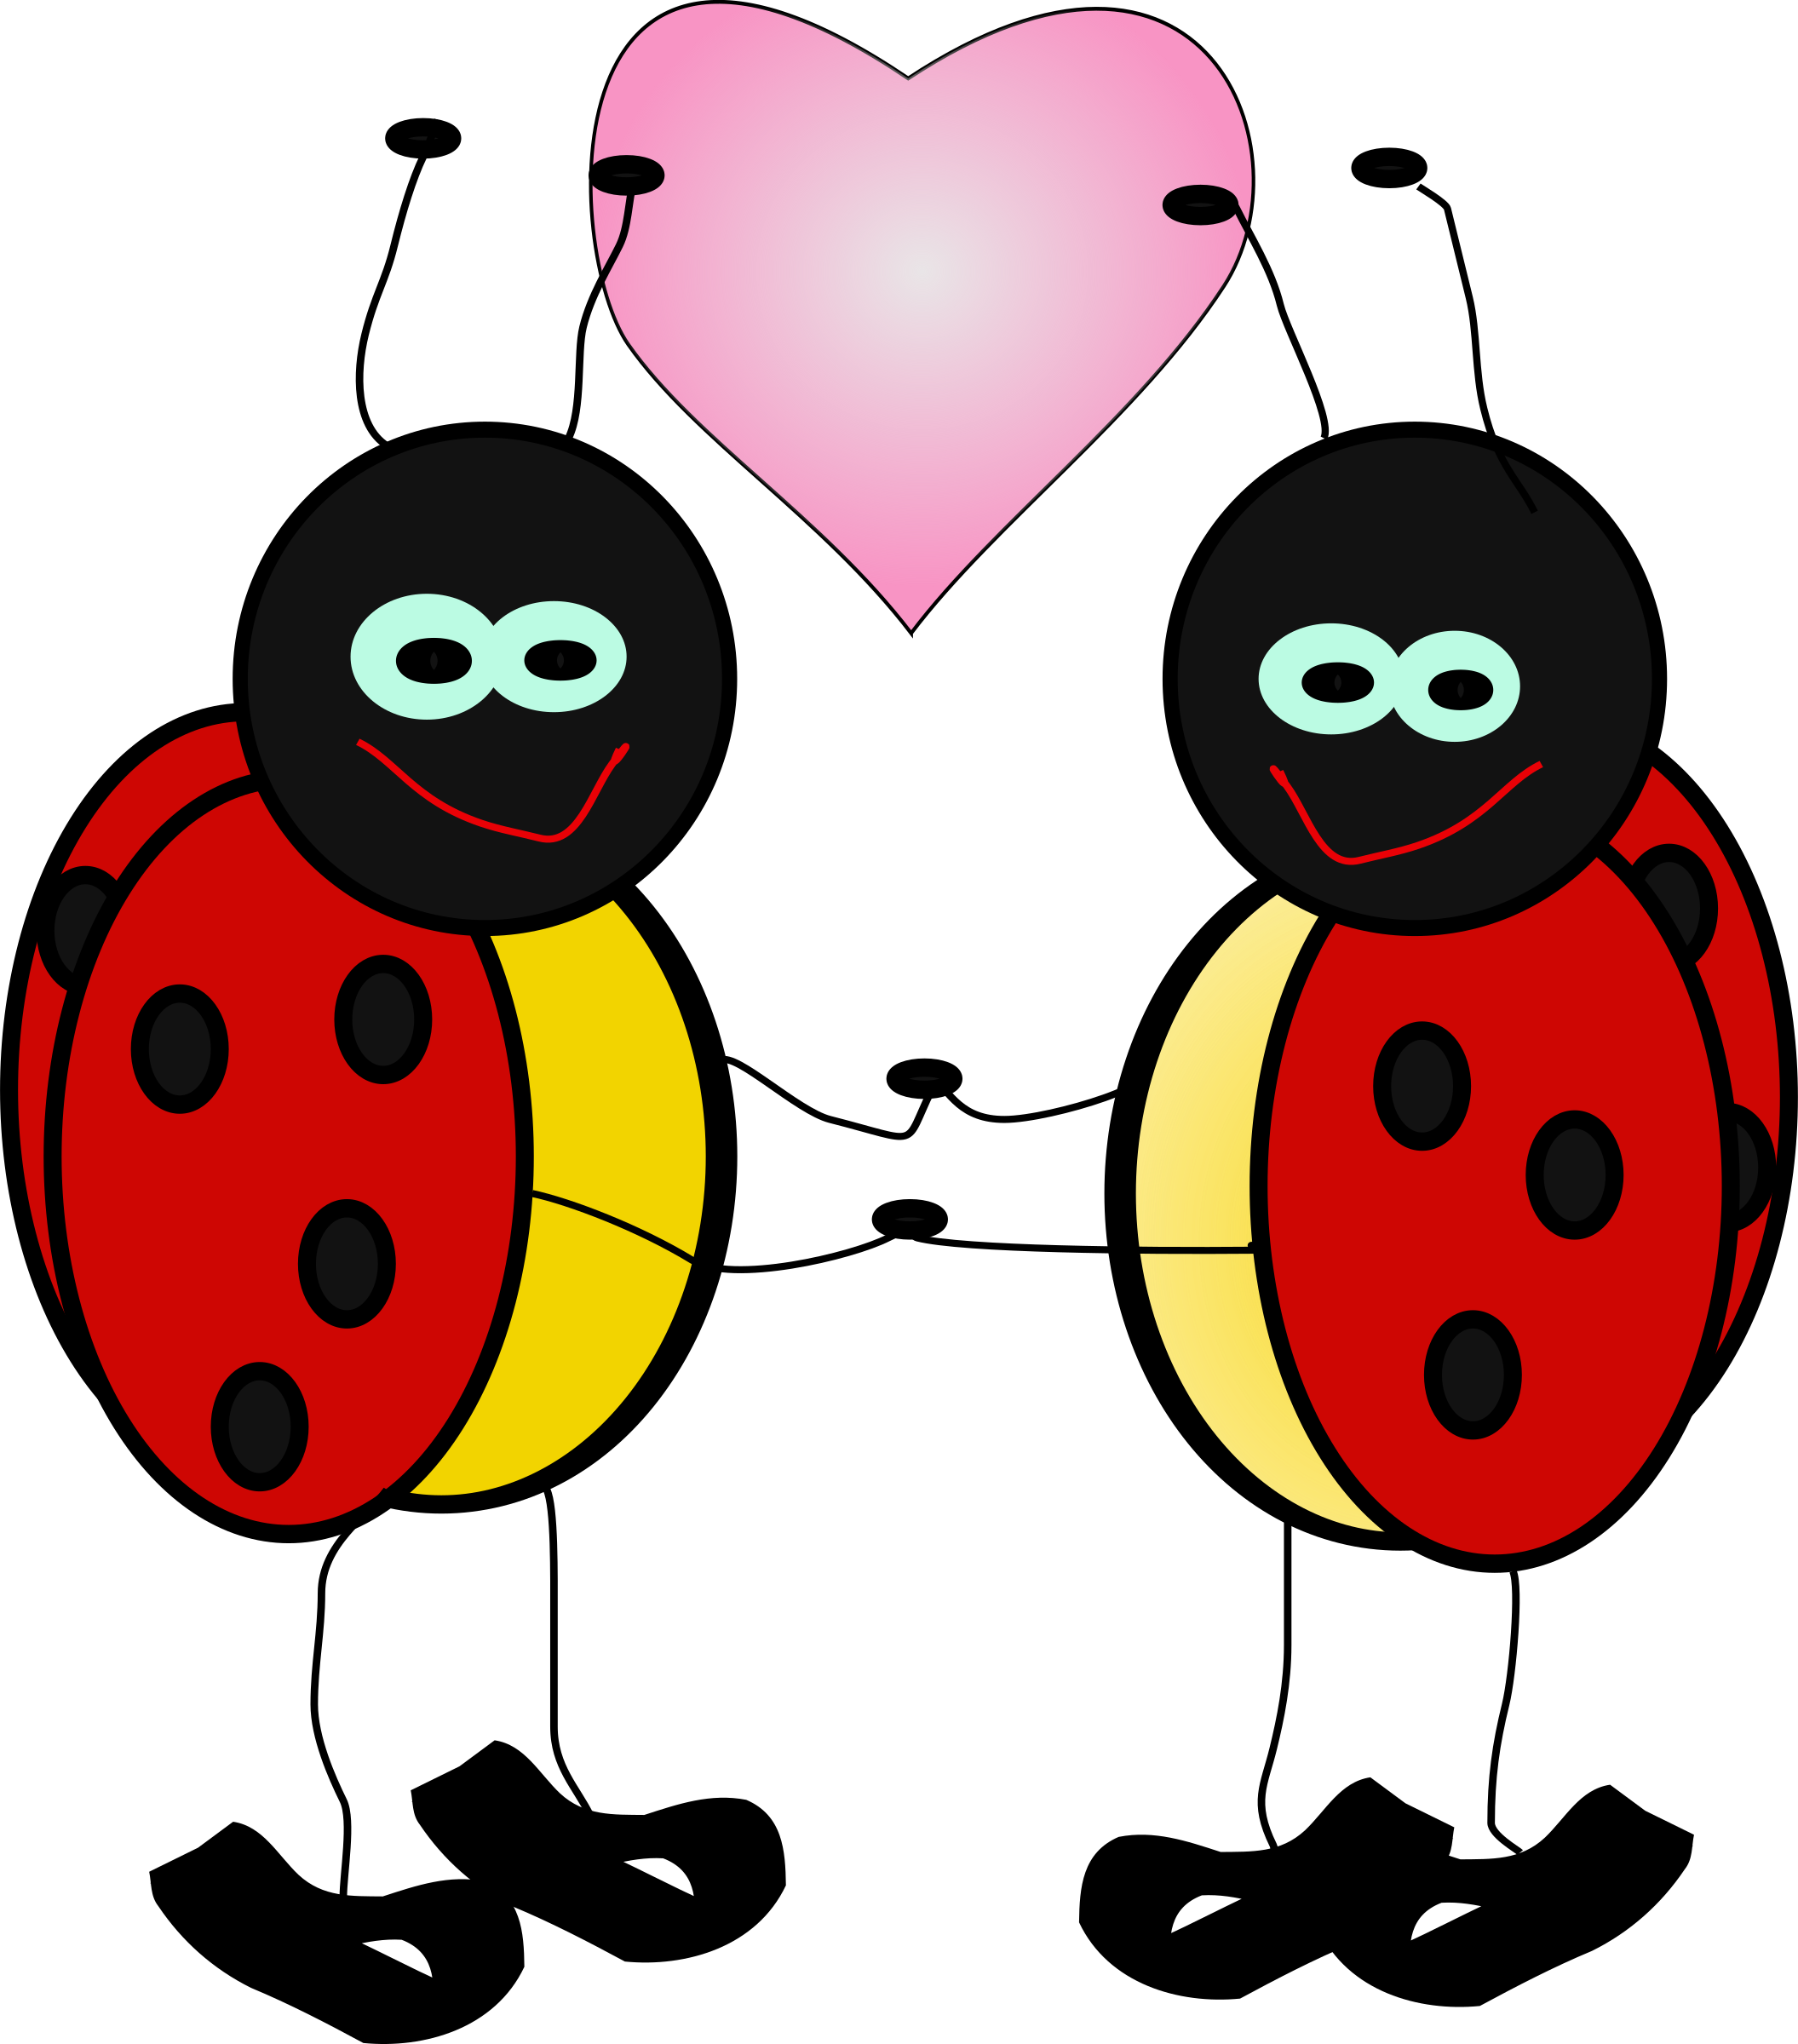 lady bugs by Machovka